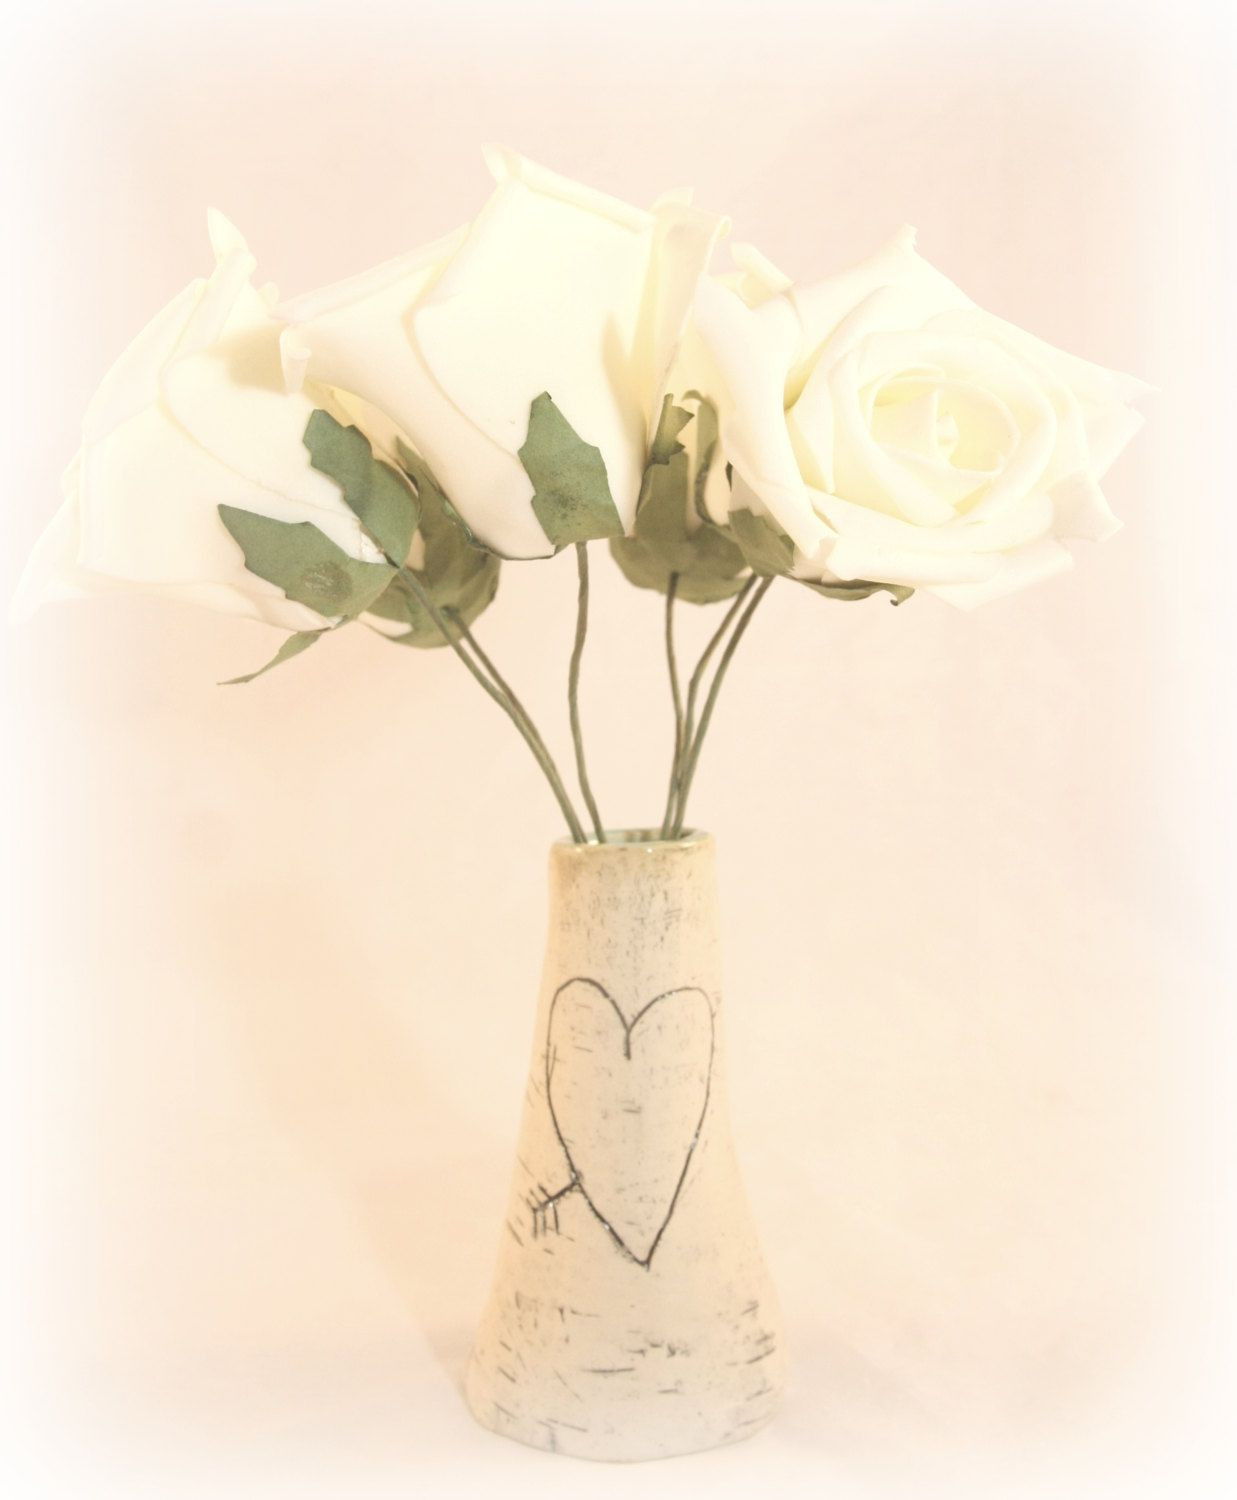 birch tree flower vases of small ceramic faux birch vase bud vase carved heart vase with small ceramic faux birch vase bud vase carved heart vase by beachjema on etsy